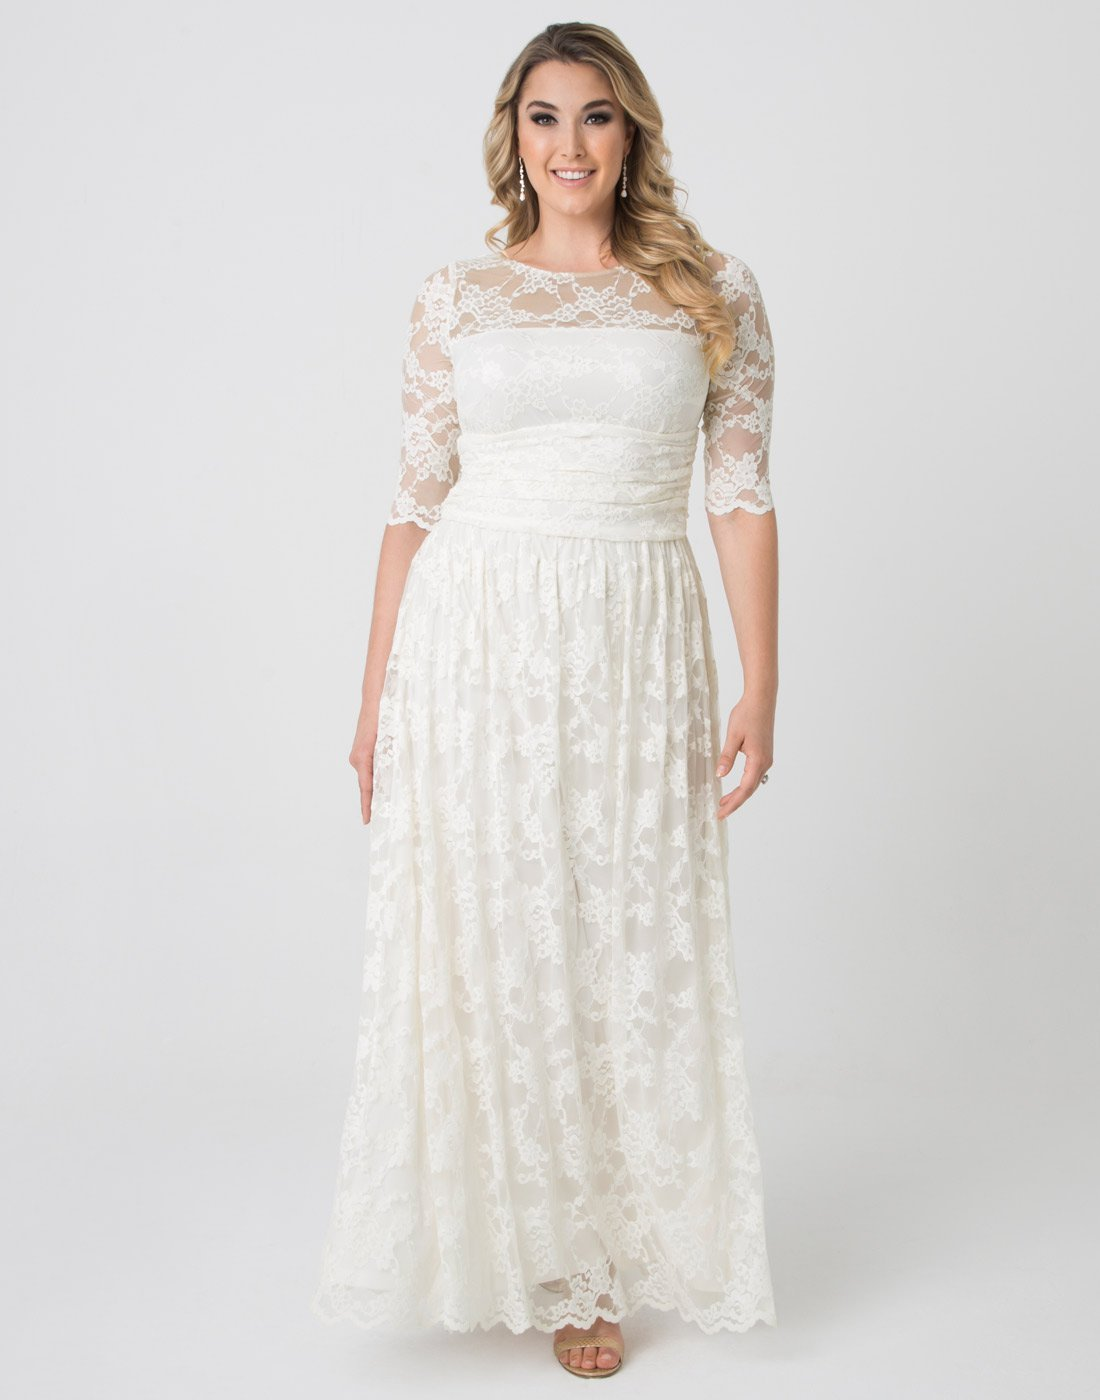 dd7c7d608e6 Home Brands Kiyonna Dresses Kiyonna Women s Plus Size Lace Illusion Wedding  Gown 2X Ivory.   